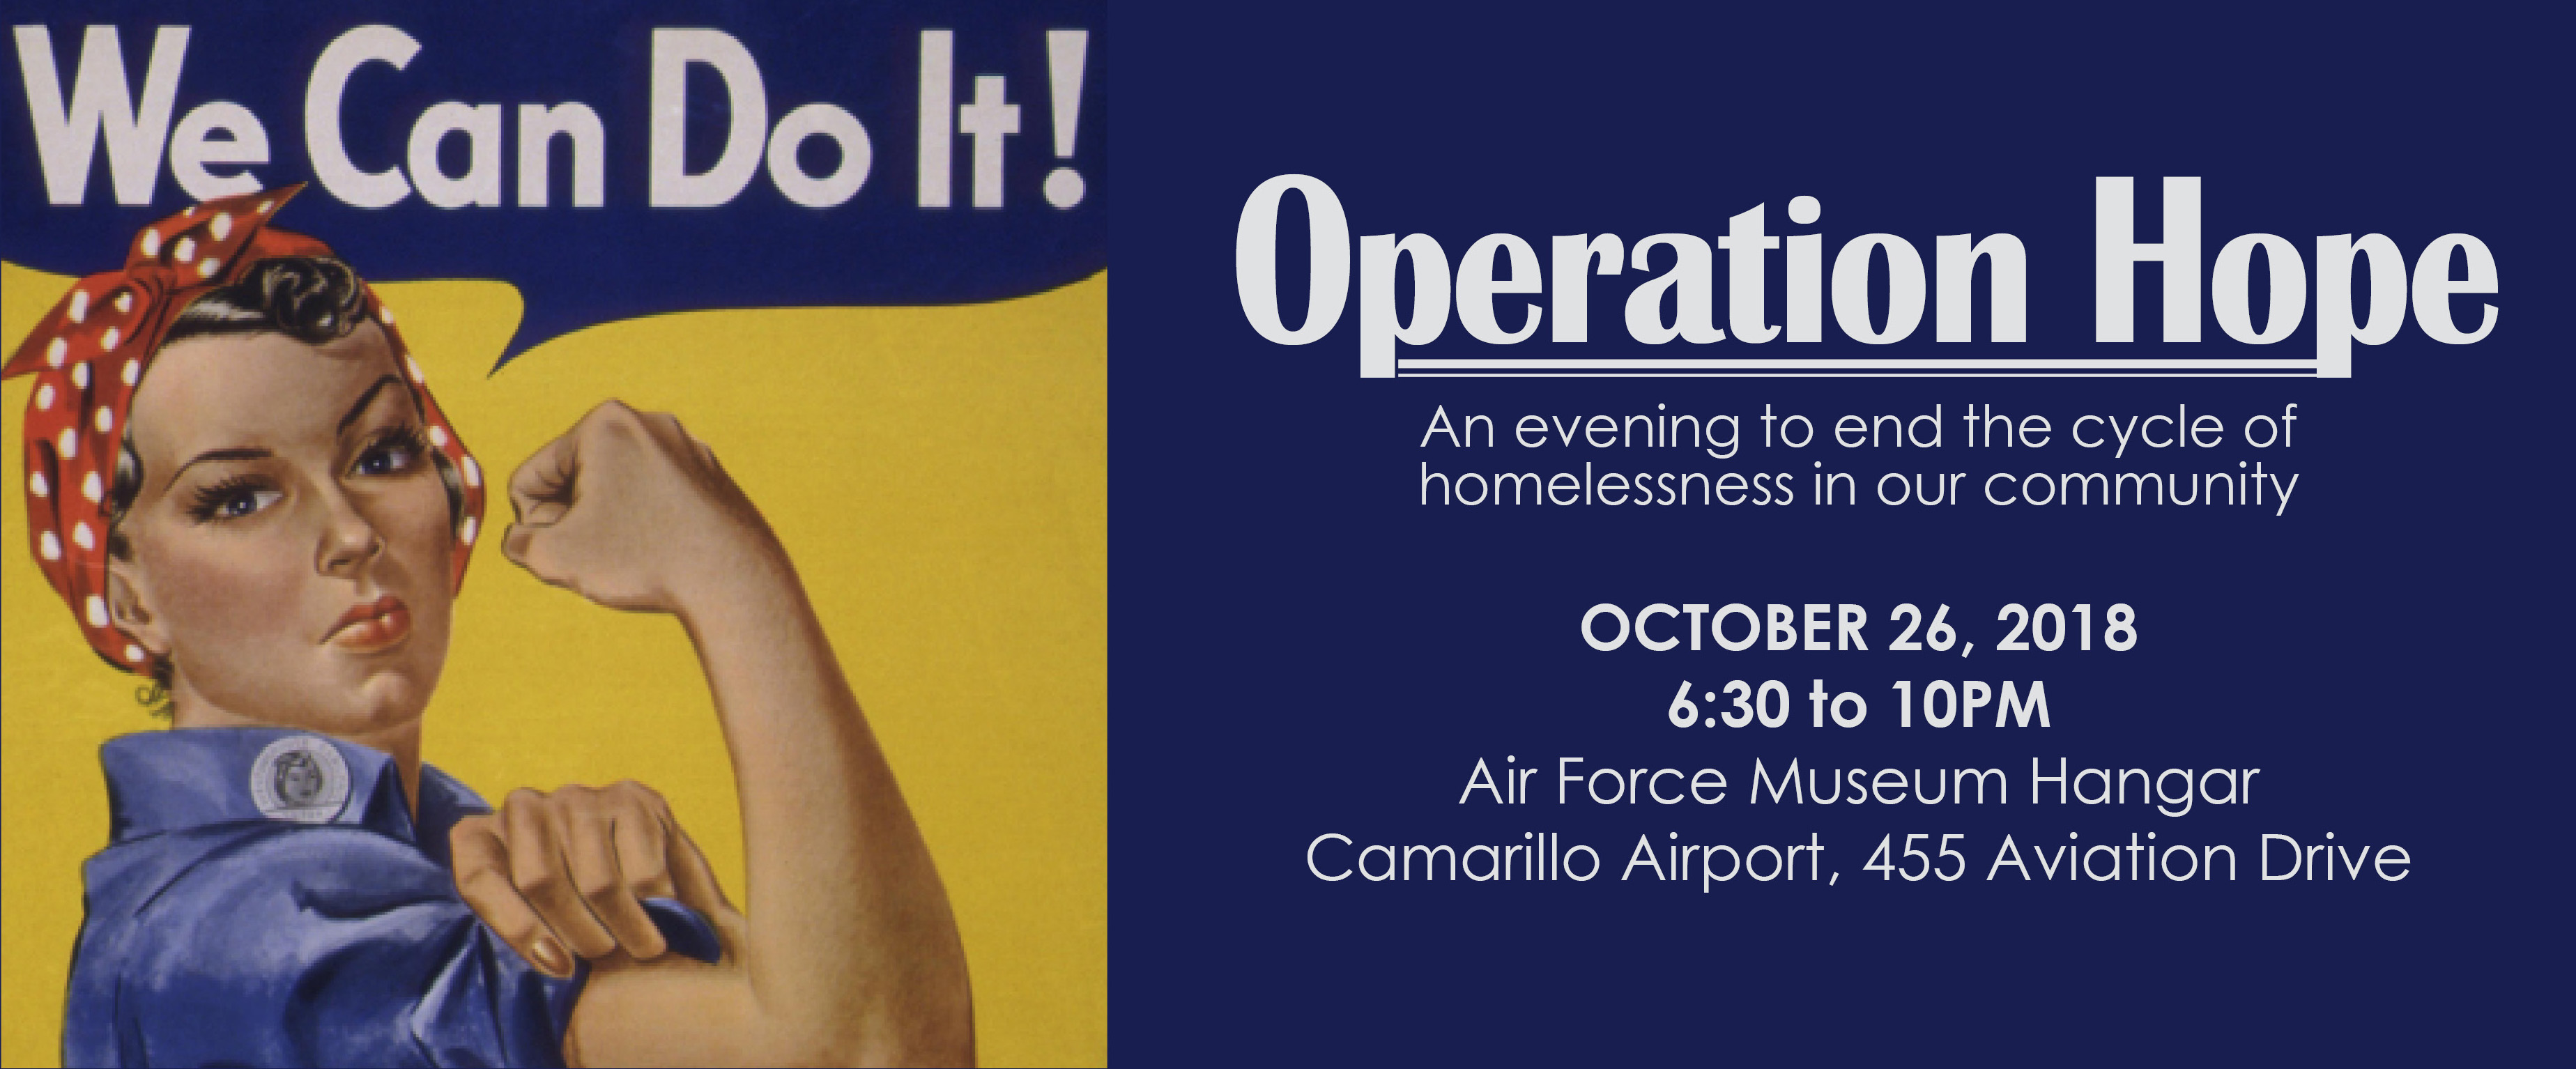 Operation Hope is SOLD OUT! Please call (805) 451-3579 to be put on the waiting list. logo